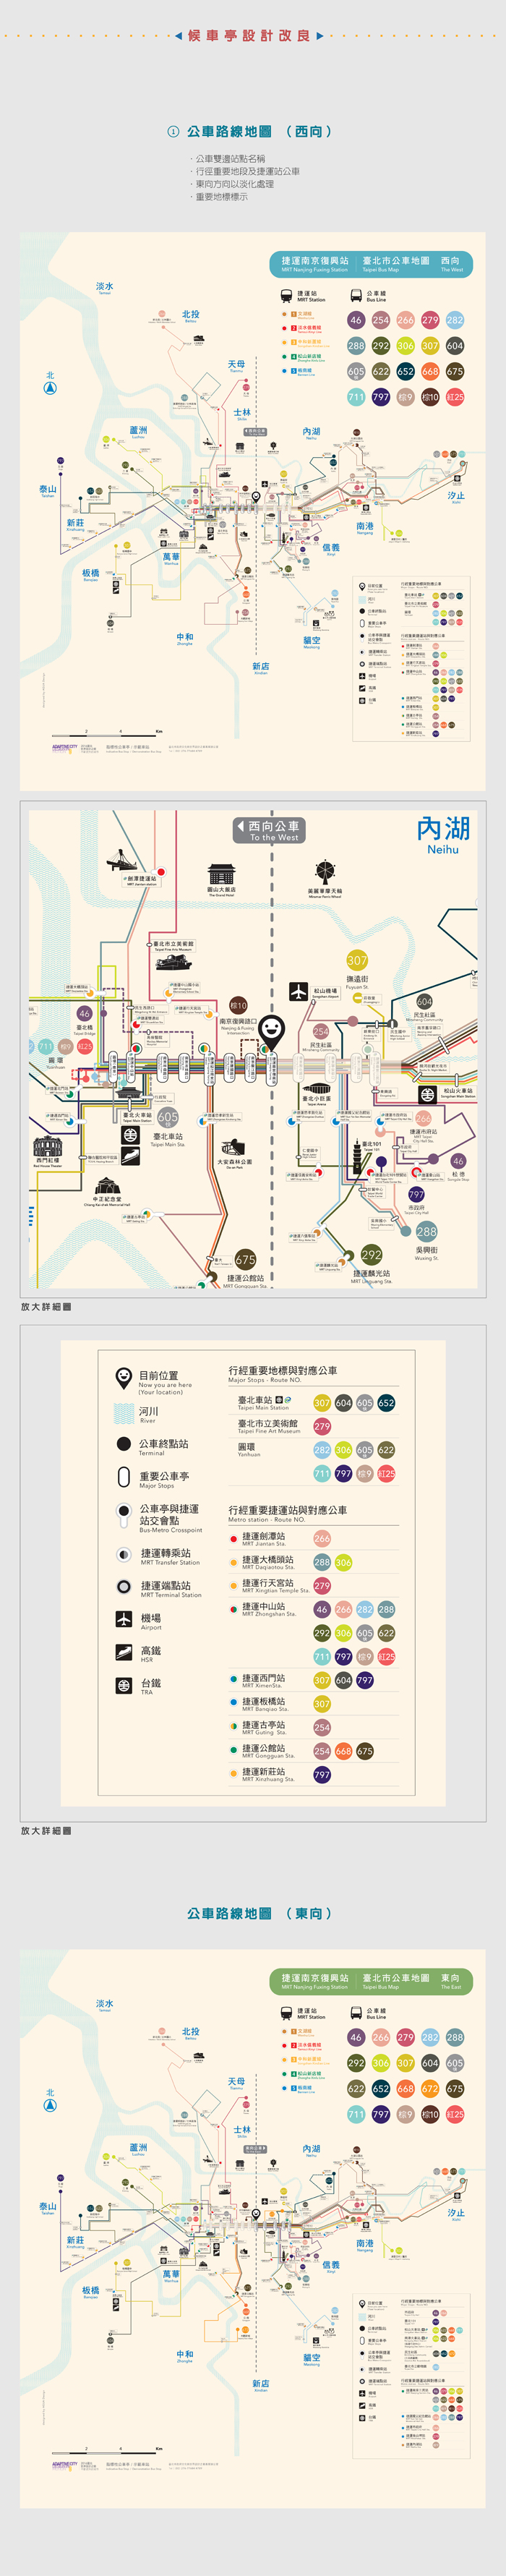 都市酵母, 水越設計, AGUA Design, city yeast, Taipei, Taiwan, 設計, 世界設計之都, world design capital, 2016, bus, bus stop, 候車亭, 公車亭, 都是酵母研究班